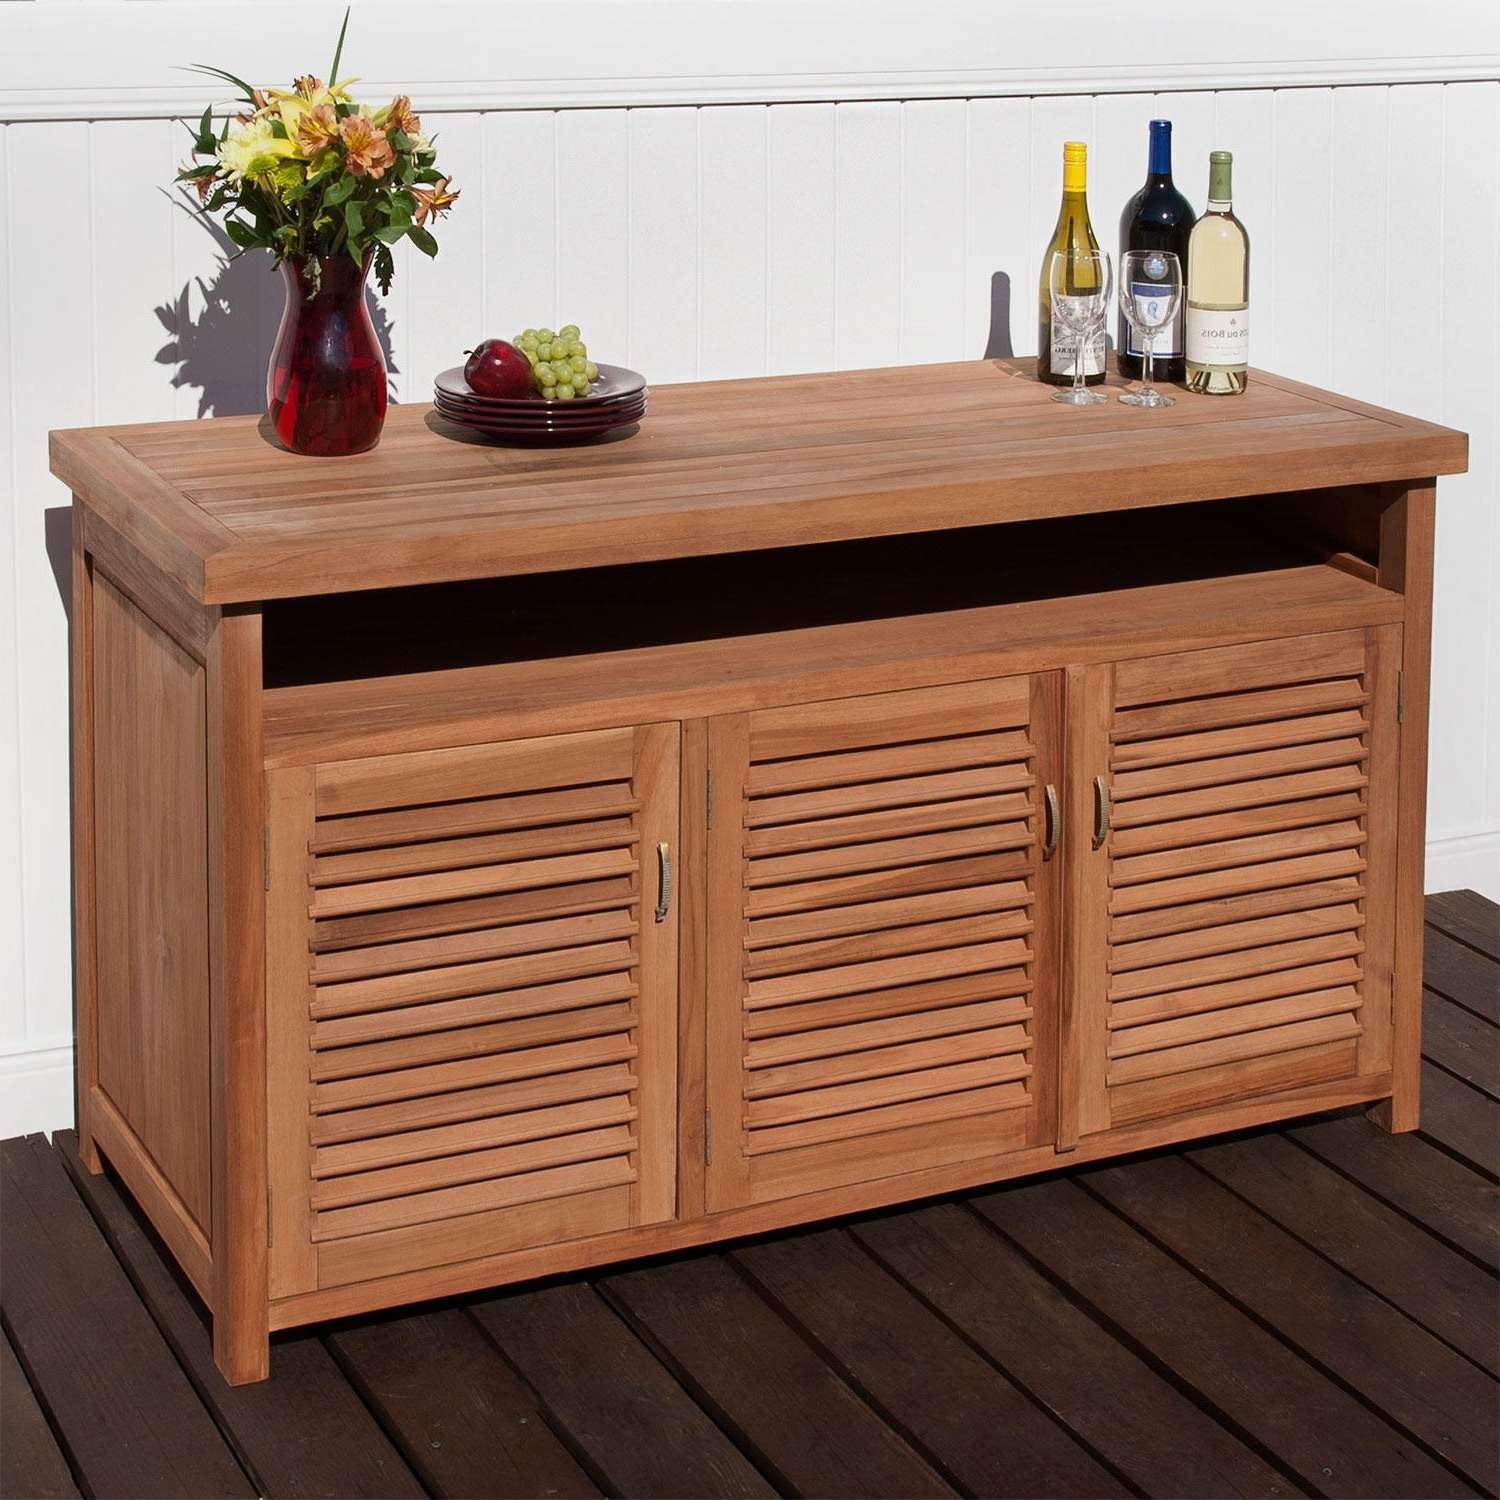 Teak Outdoor Buffet With Storage – Outdoor With Regard To Outdoor Sideboards Tables (View 1 of 20)